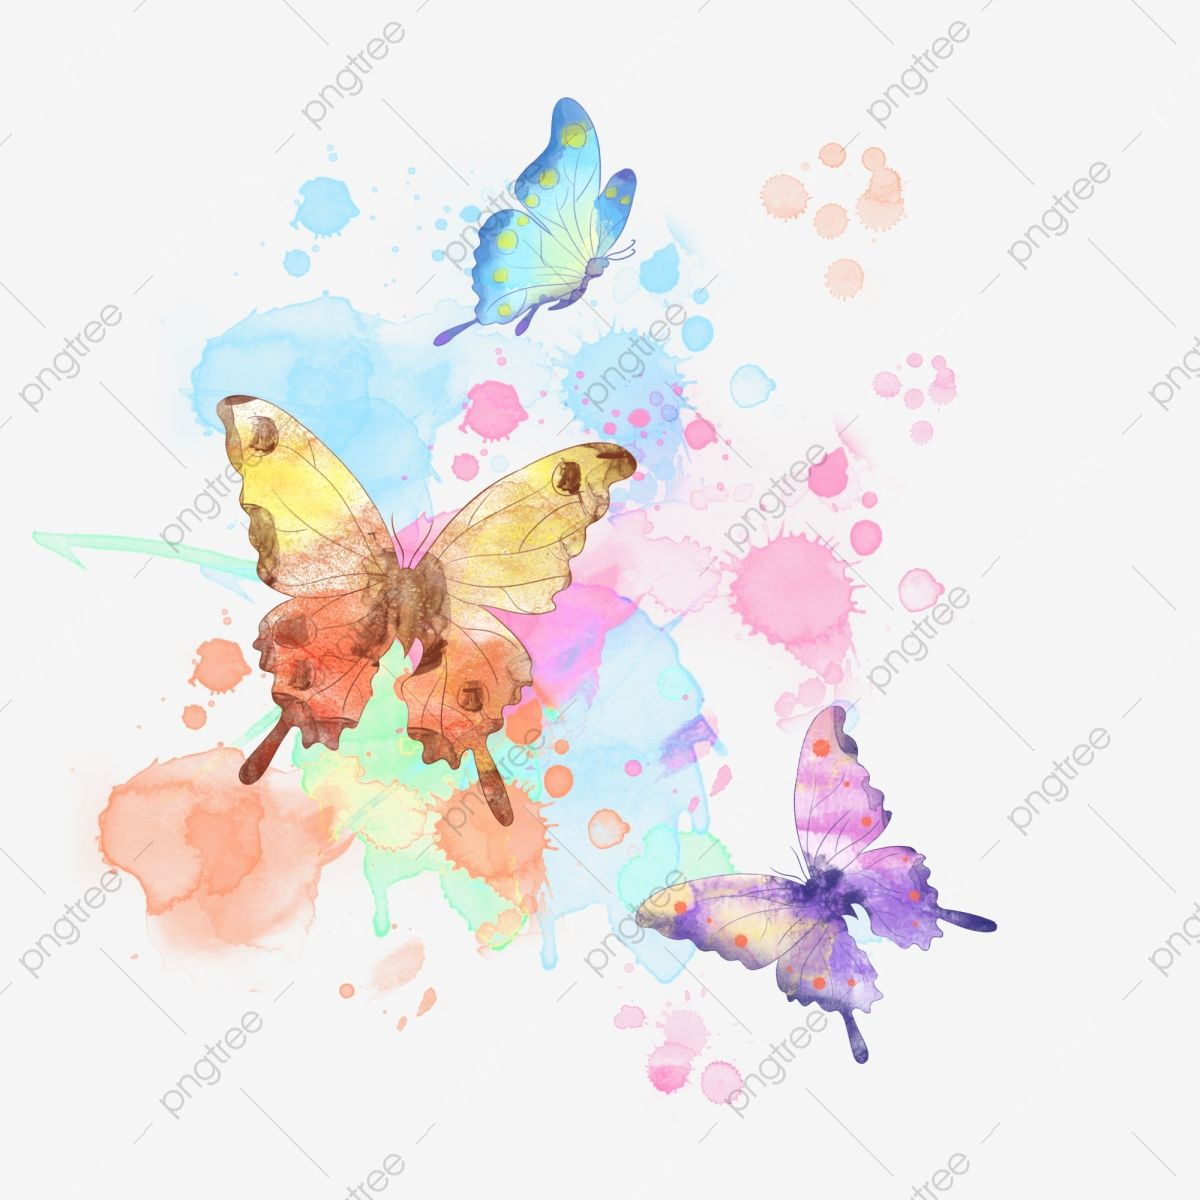 Watercolor Butterfly Insect Colorful Butterfly Png Transparent Clipart Image And Psd File For Free Download Butterfly Watercolor Butterfly Background Butterfly Illustration